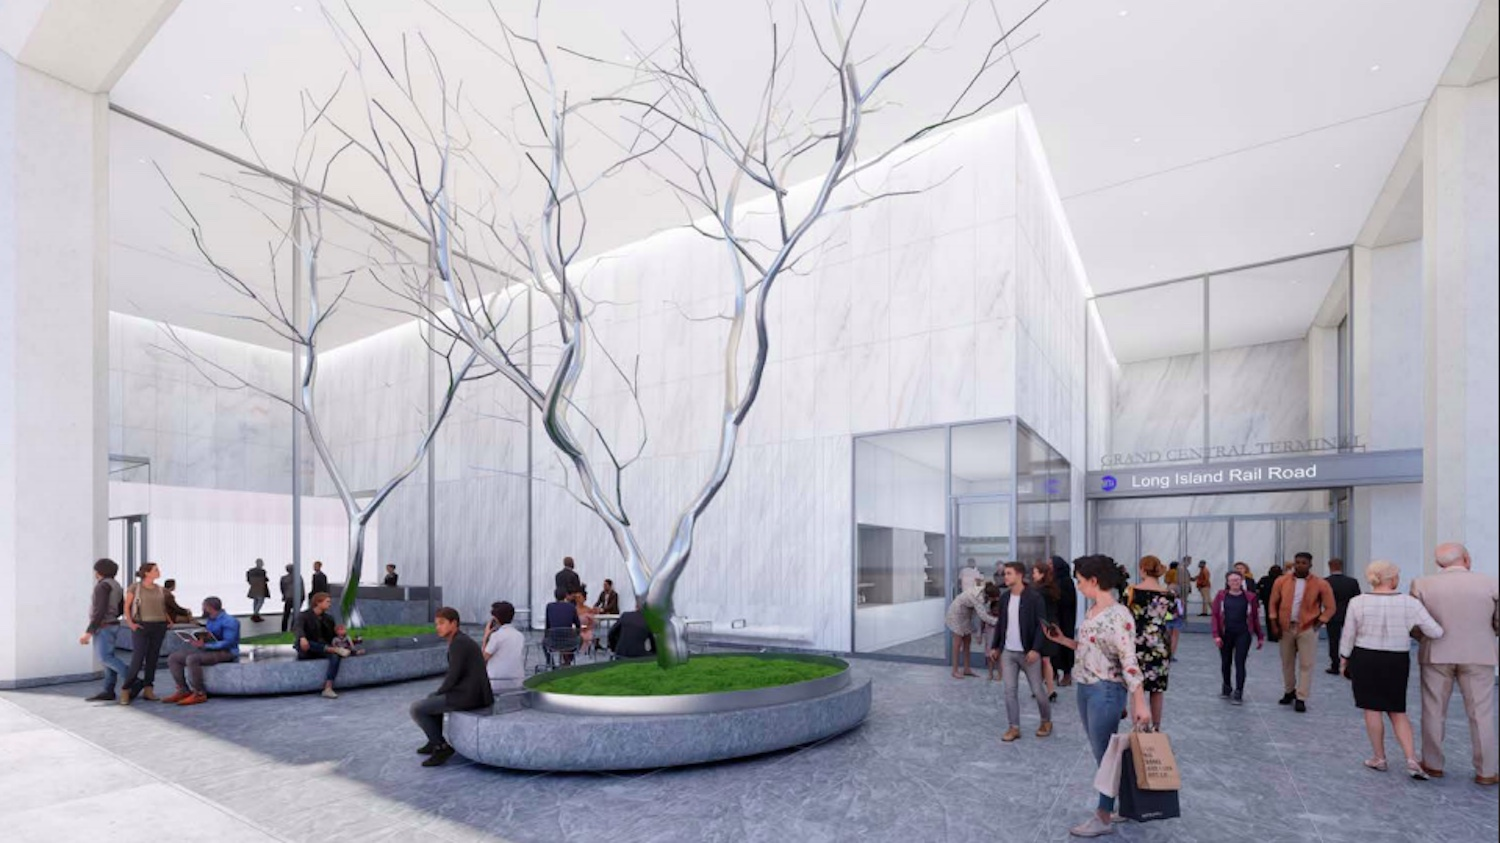 Illustrative rendering of the concourse. Courtesy of SOM